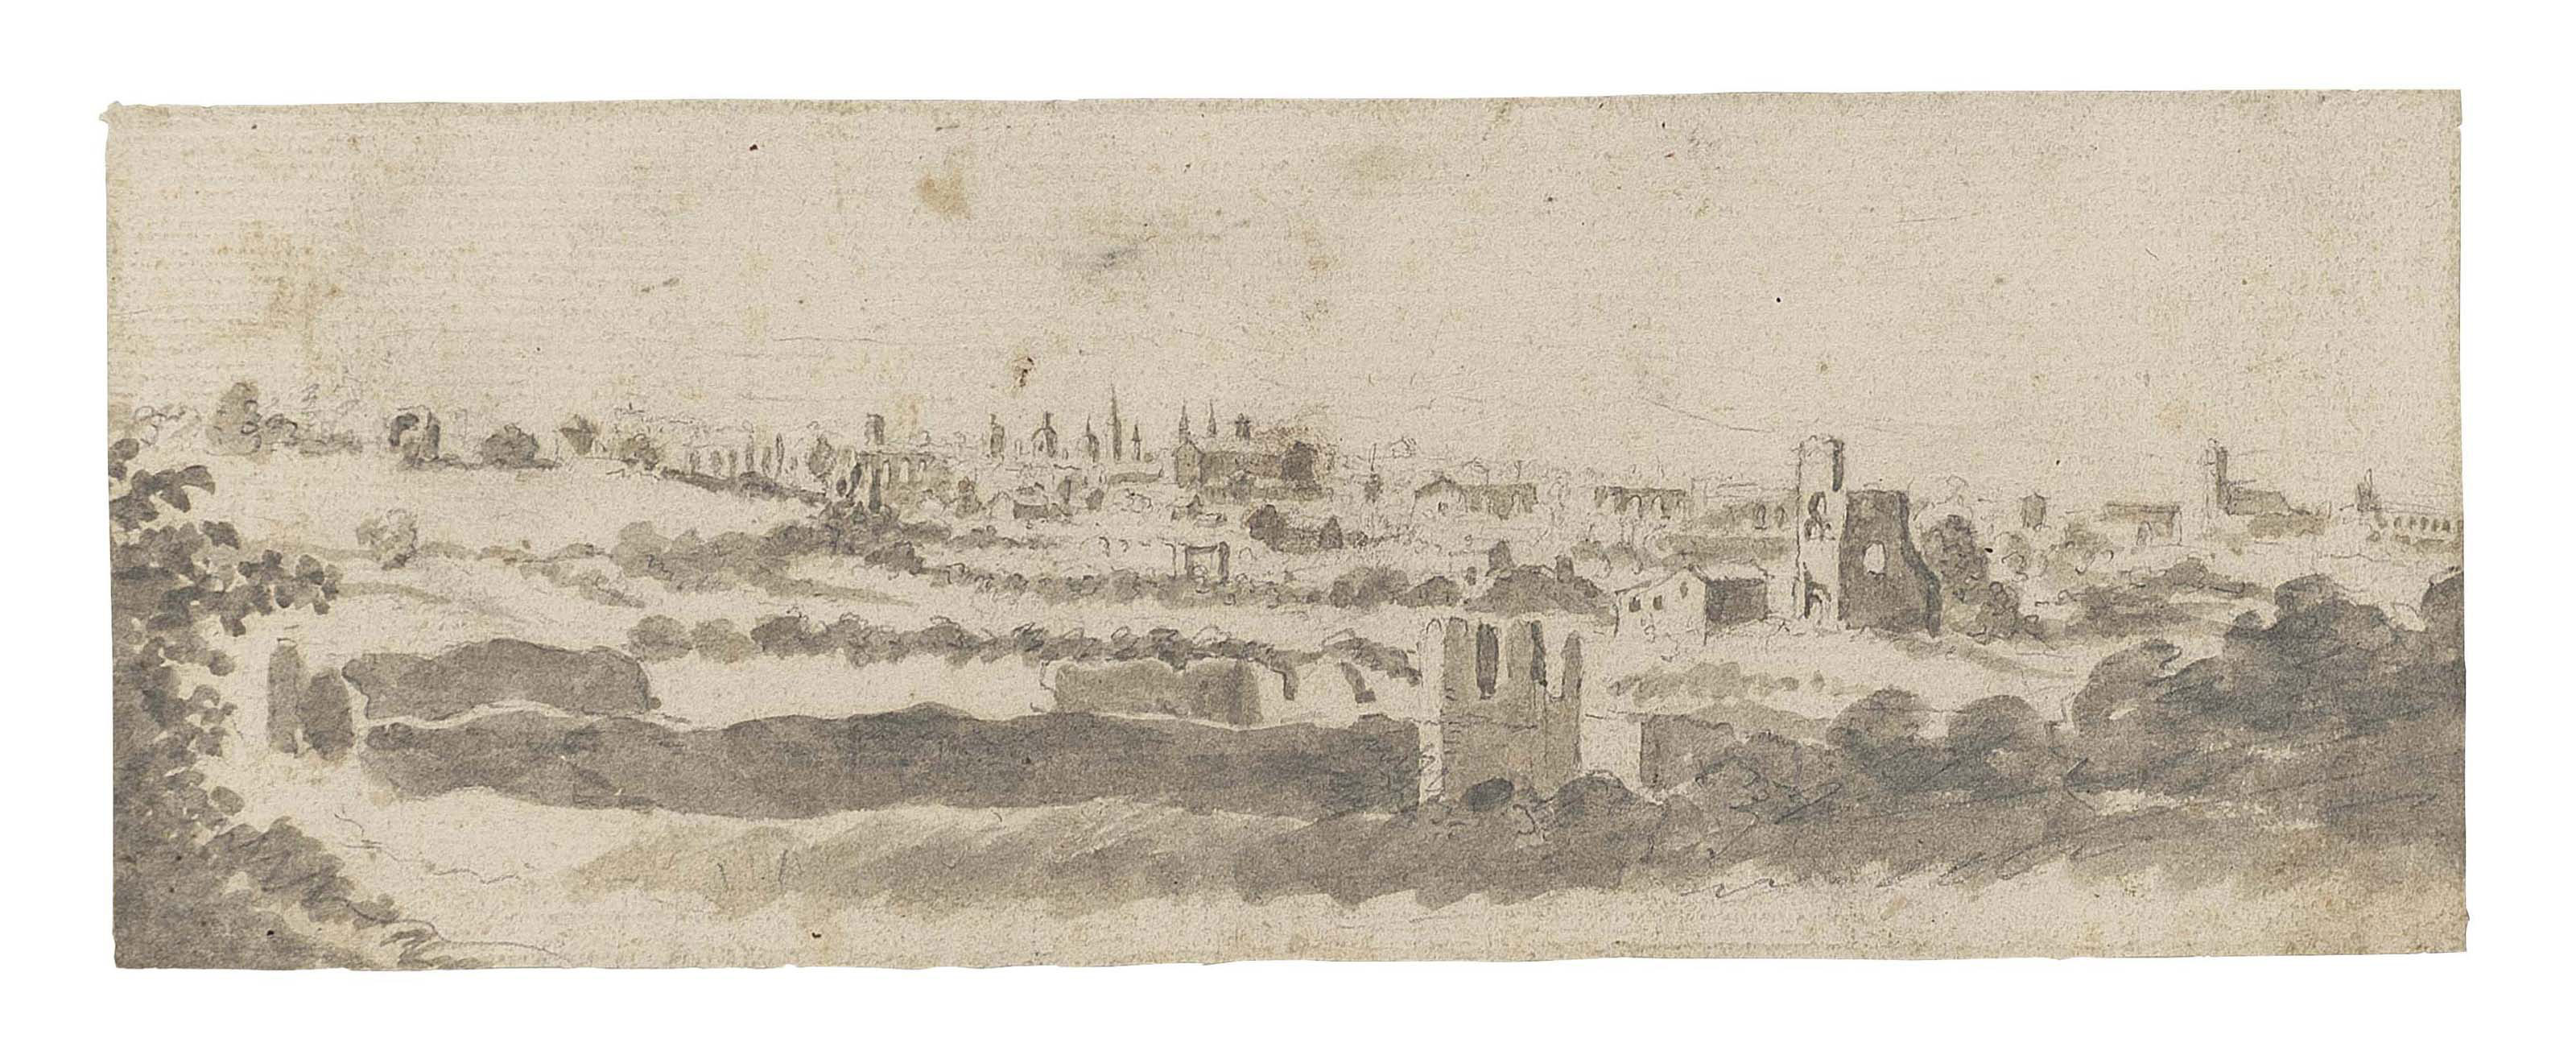 A panoramic view of Rome from the campagna